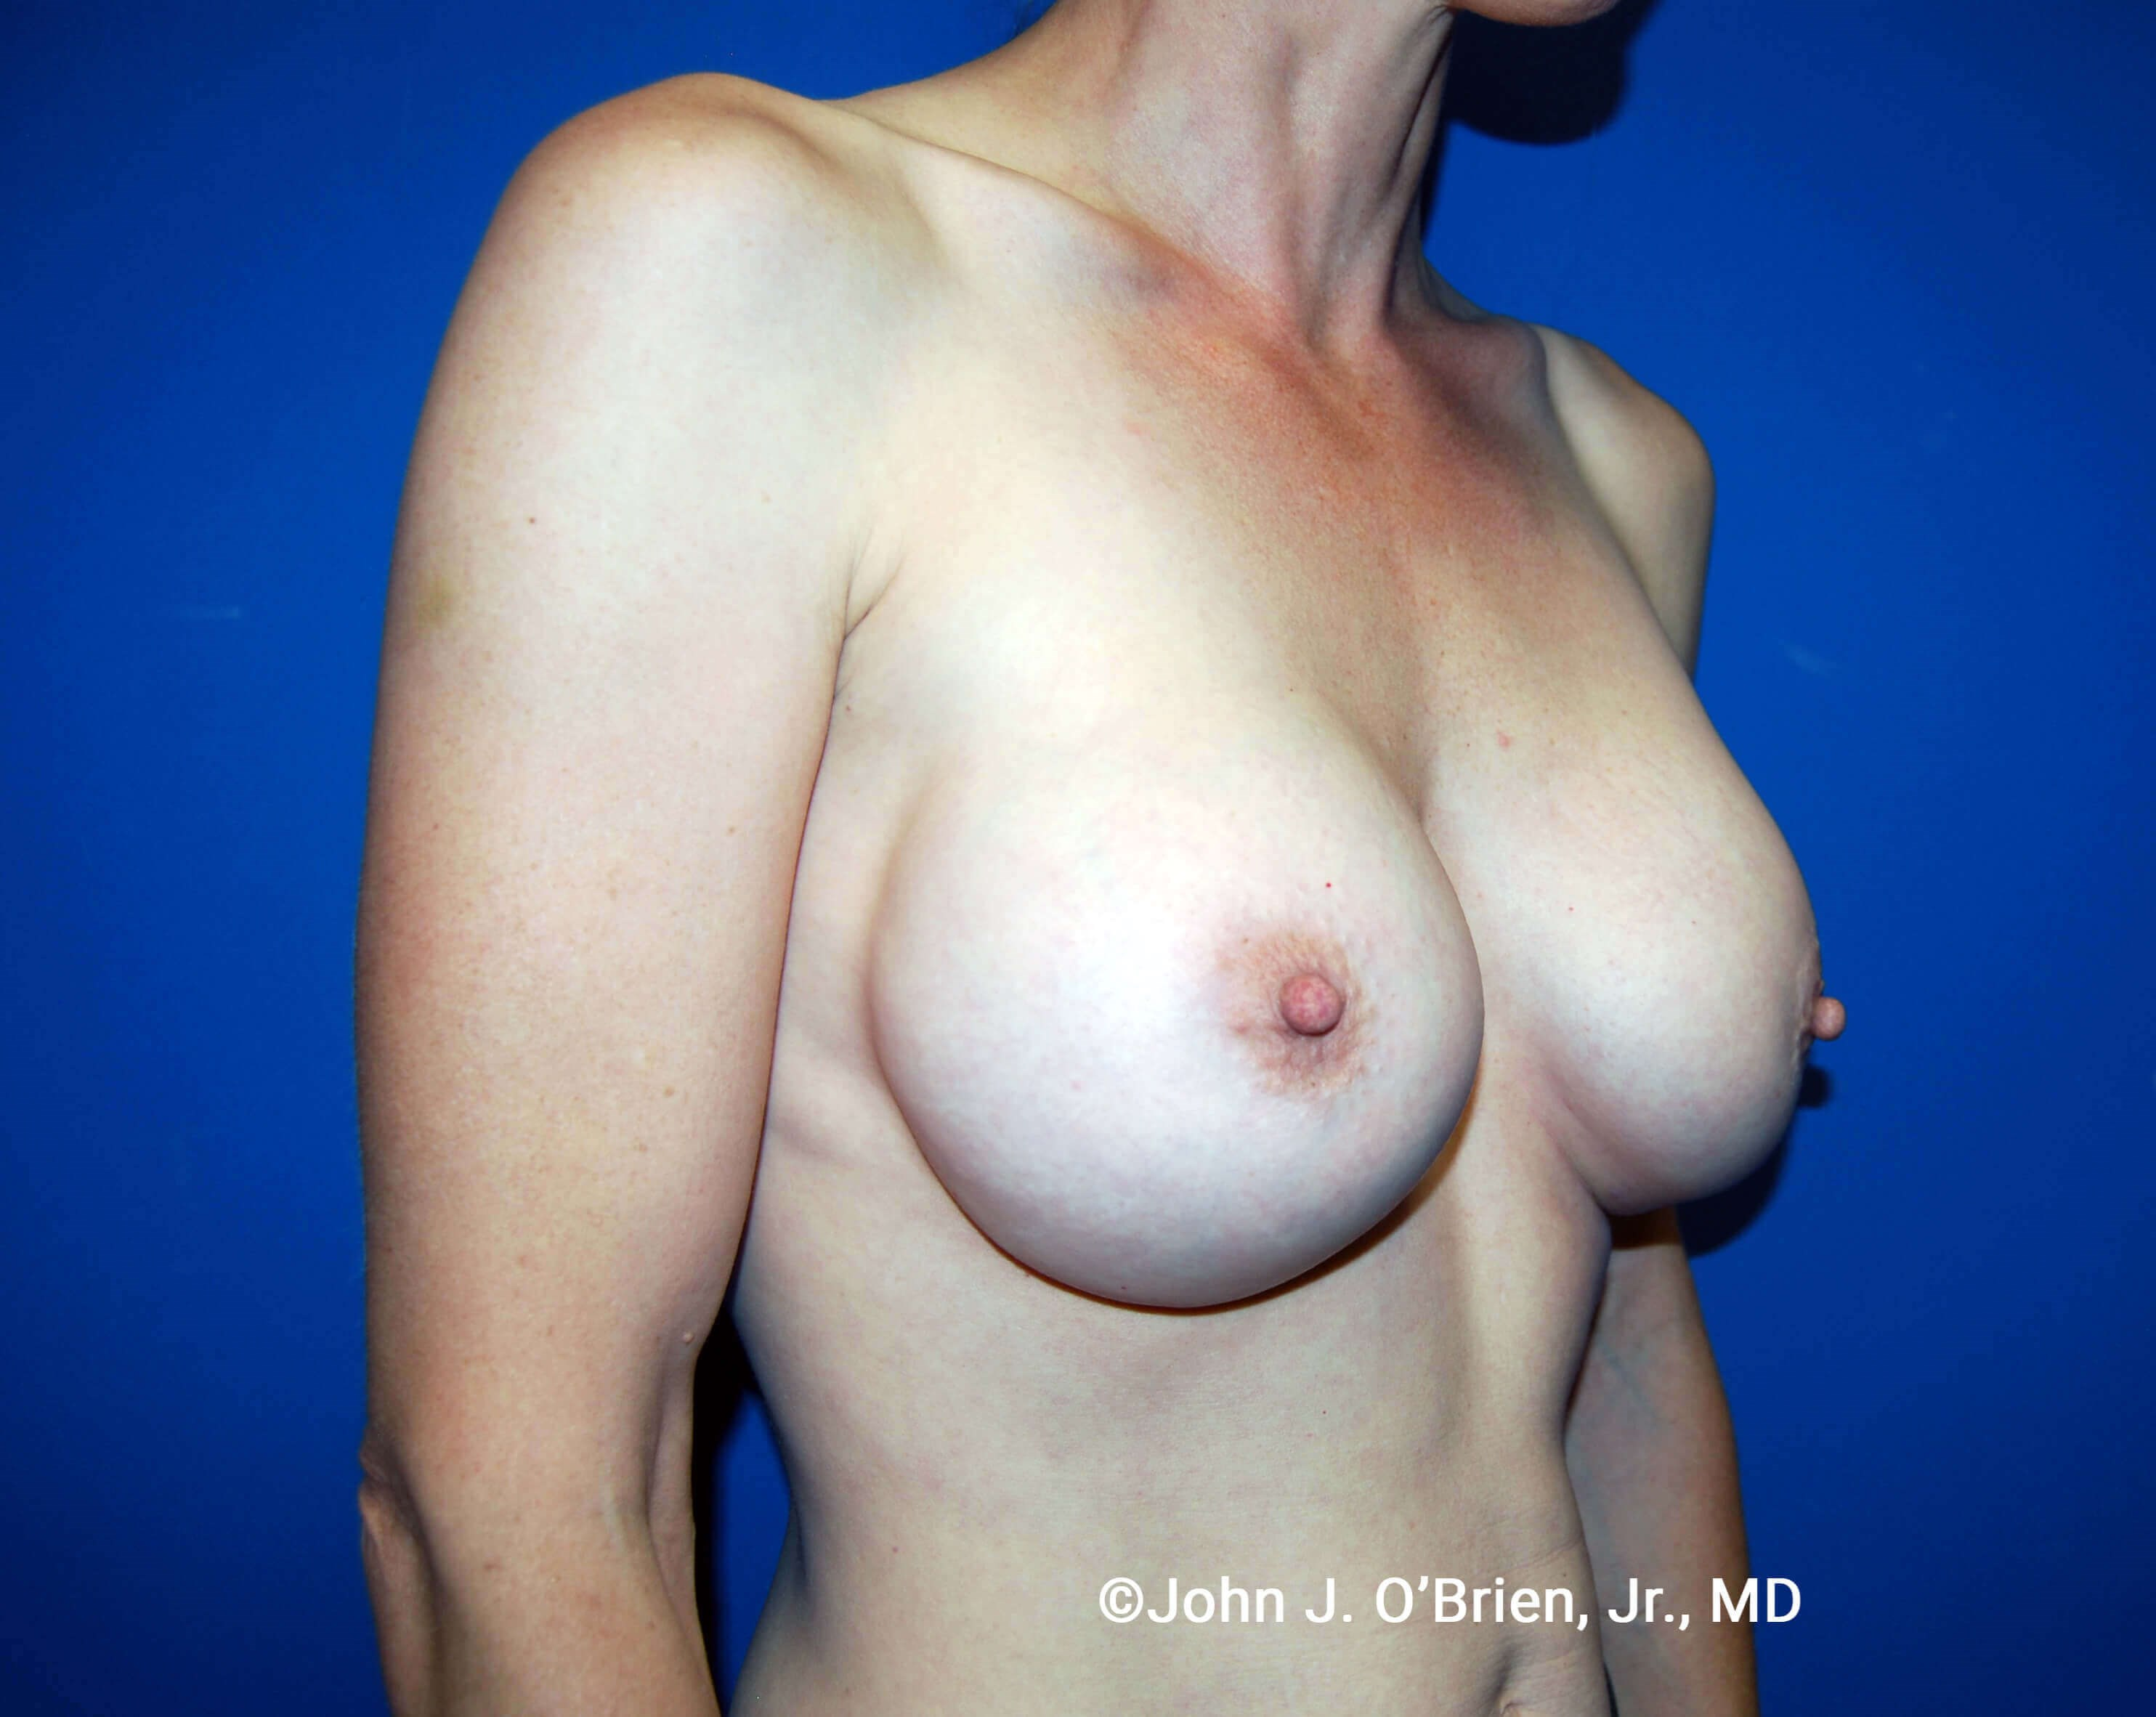 Right Side View After 385cc Implants